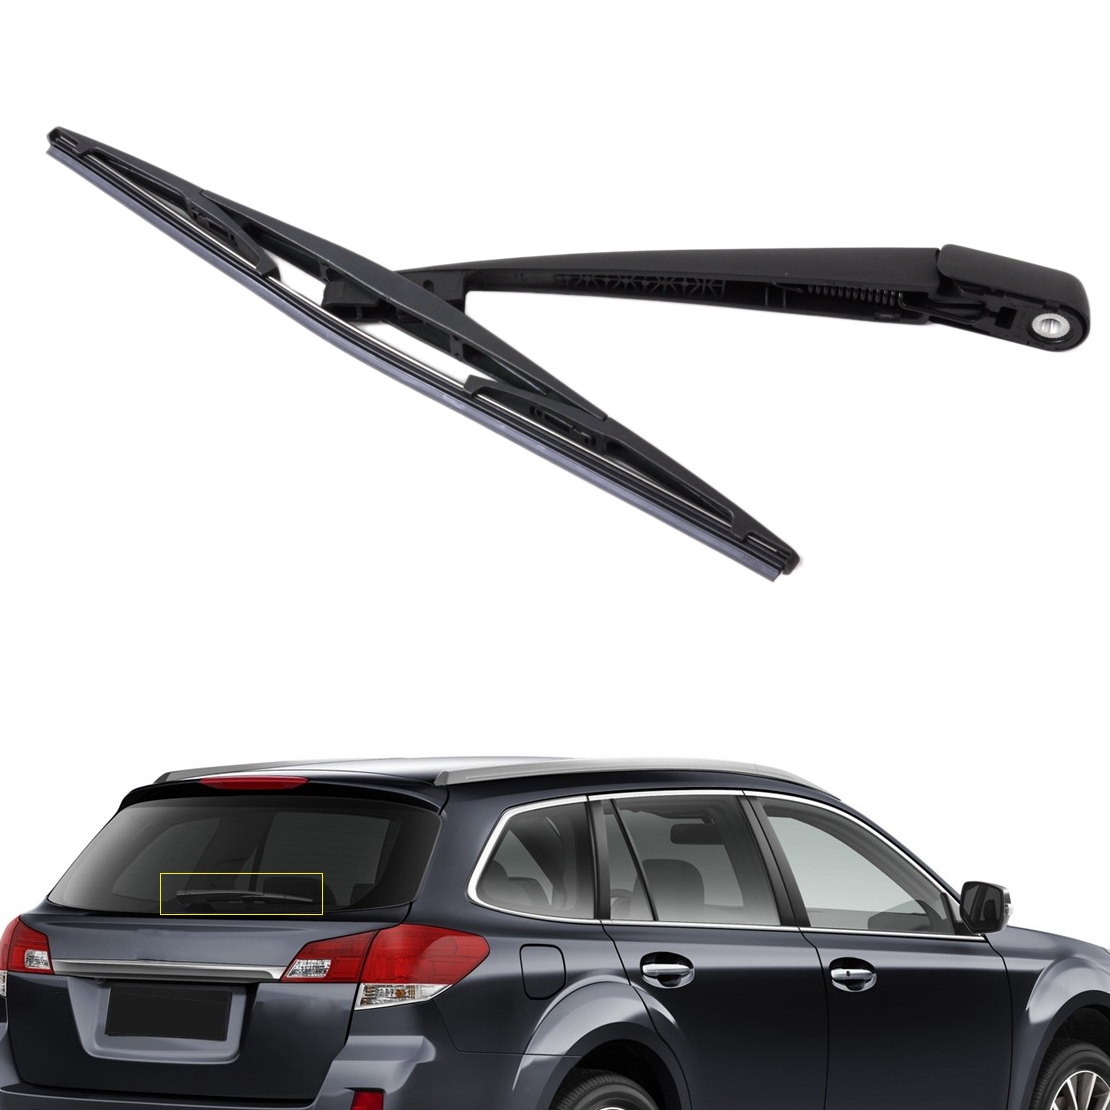 CITALL Rear Window Windshield Wiper Arm + Blade For <font><b>Subaru</b></font> Forester 2004 2005 Impreza 2005 Legacy <font><b>2006</b></font> <font><b>Outback</b></font> 2007 image